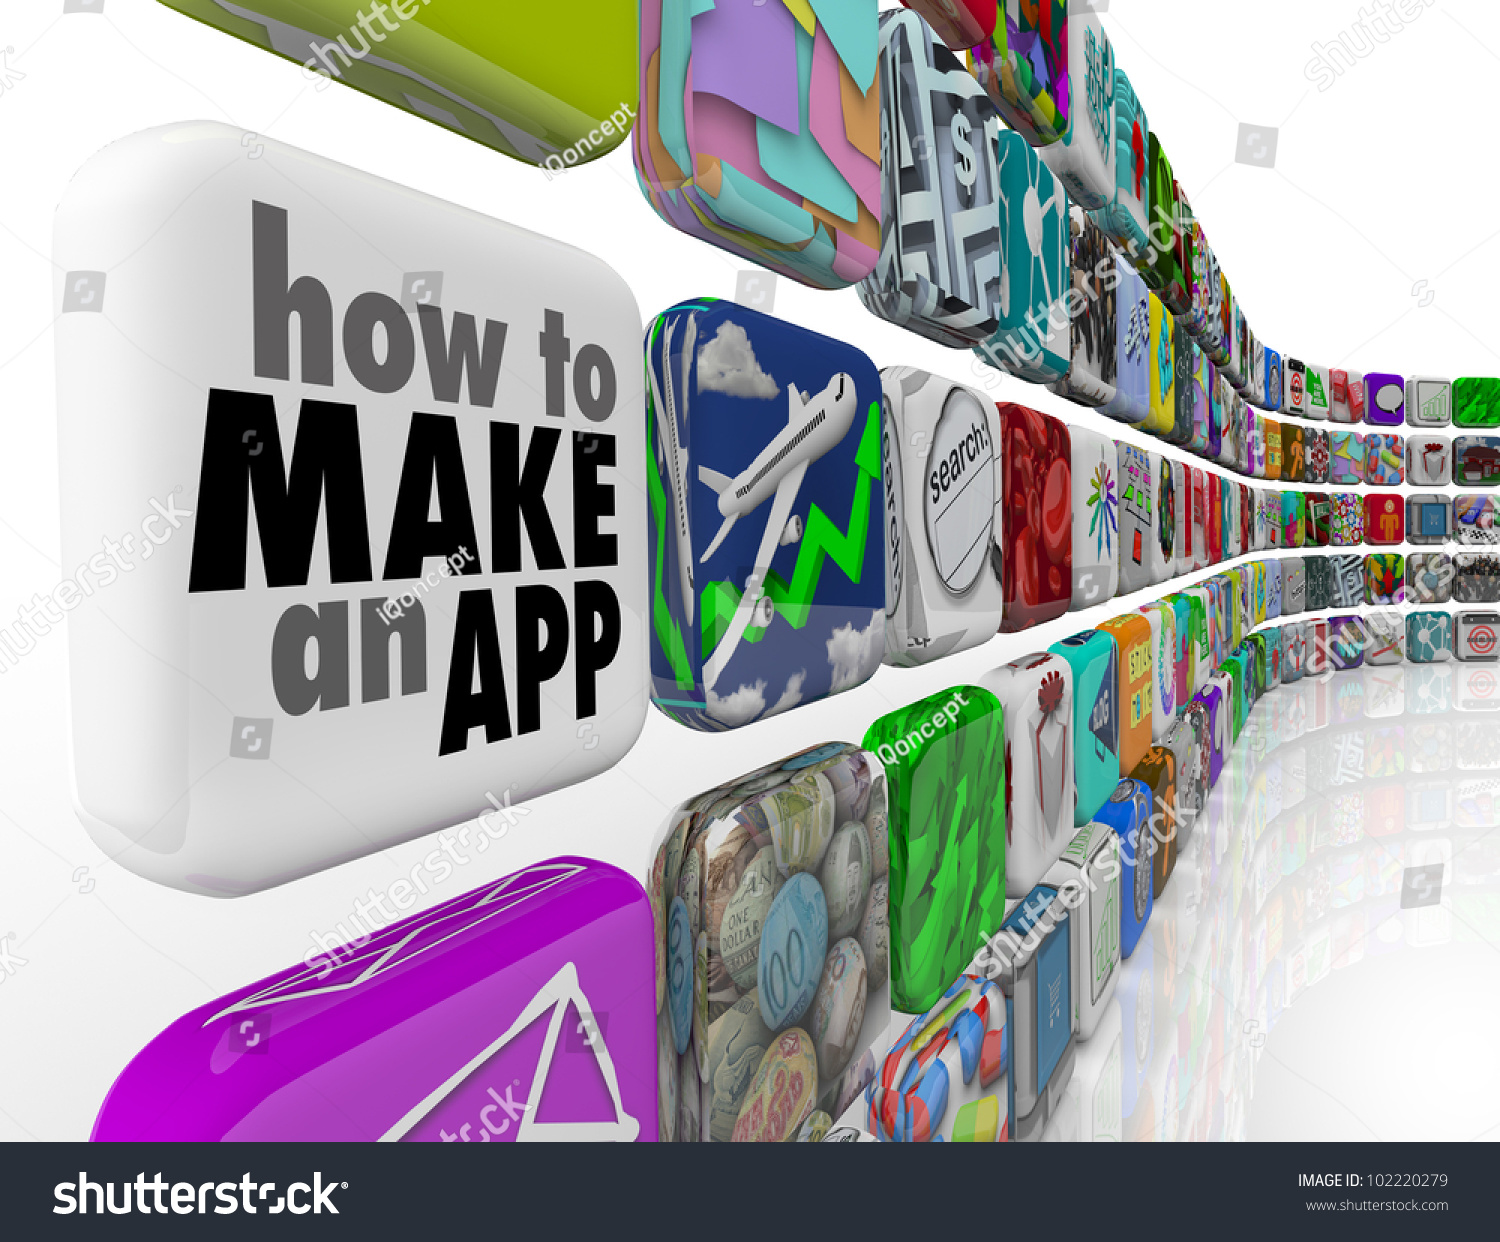 How To Make An App Message On A White Application Tile In A Wall Of  Downloadable